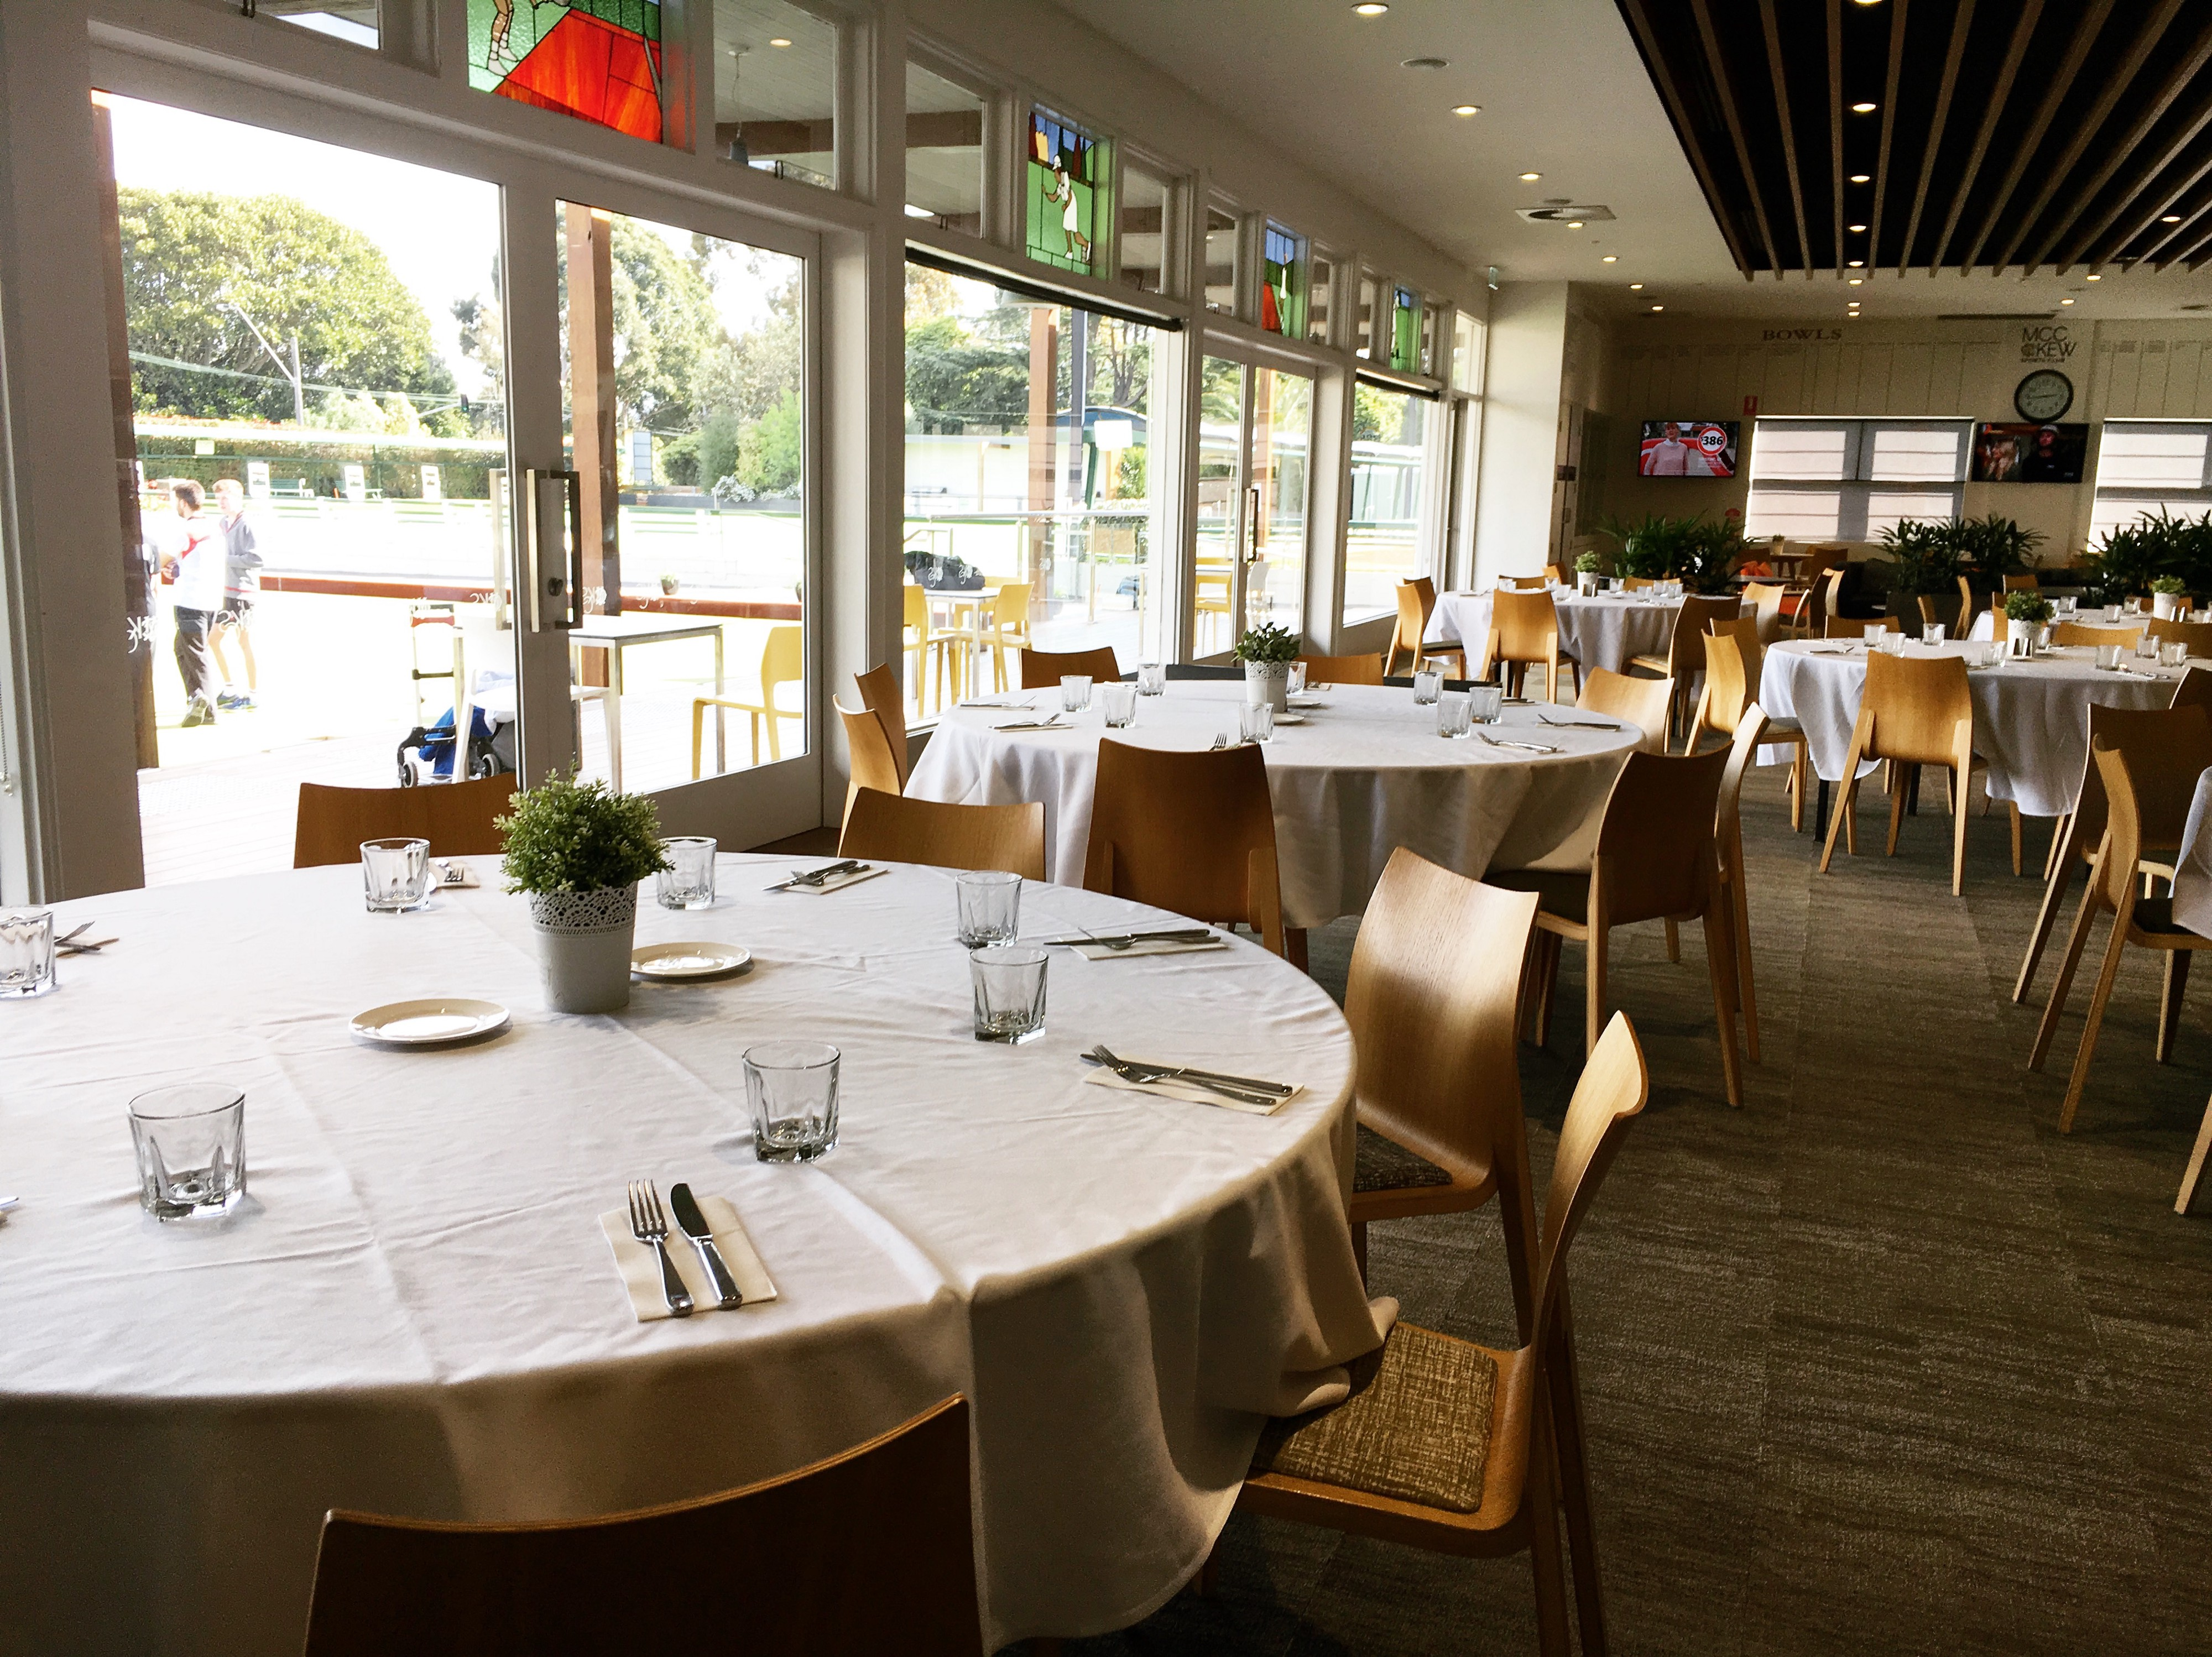 Kew Sports Club — Caters For All Ages  by Kew For You  Medium